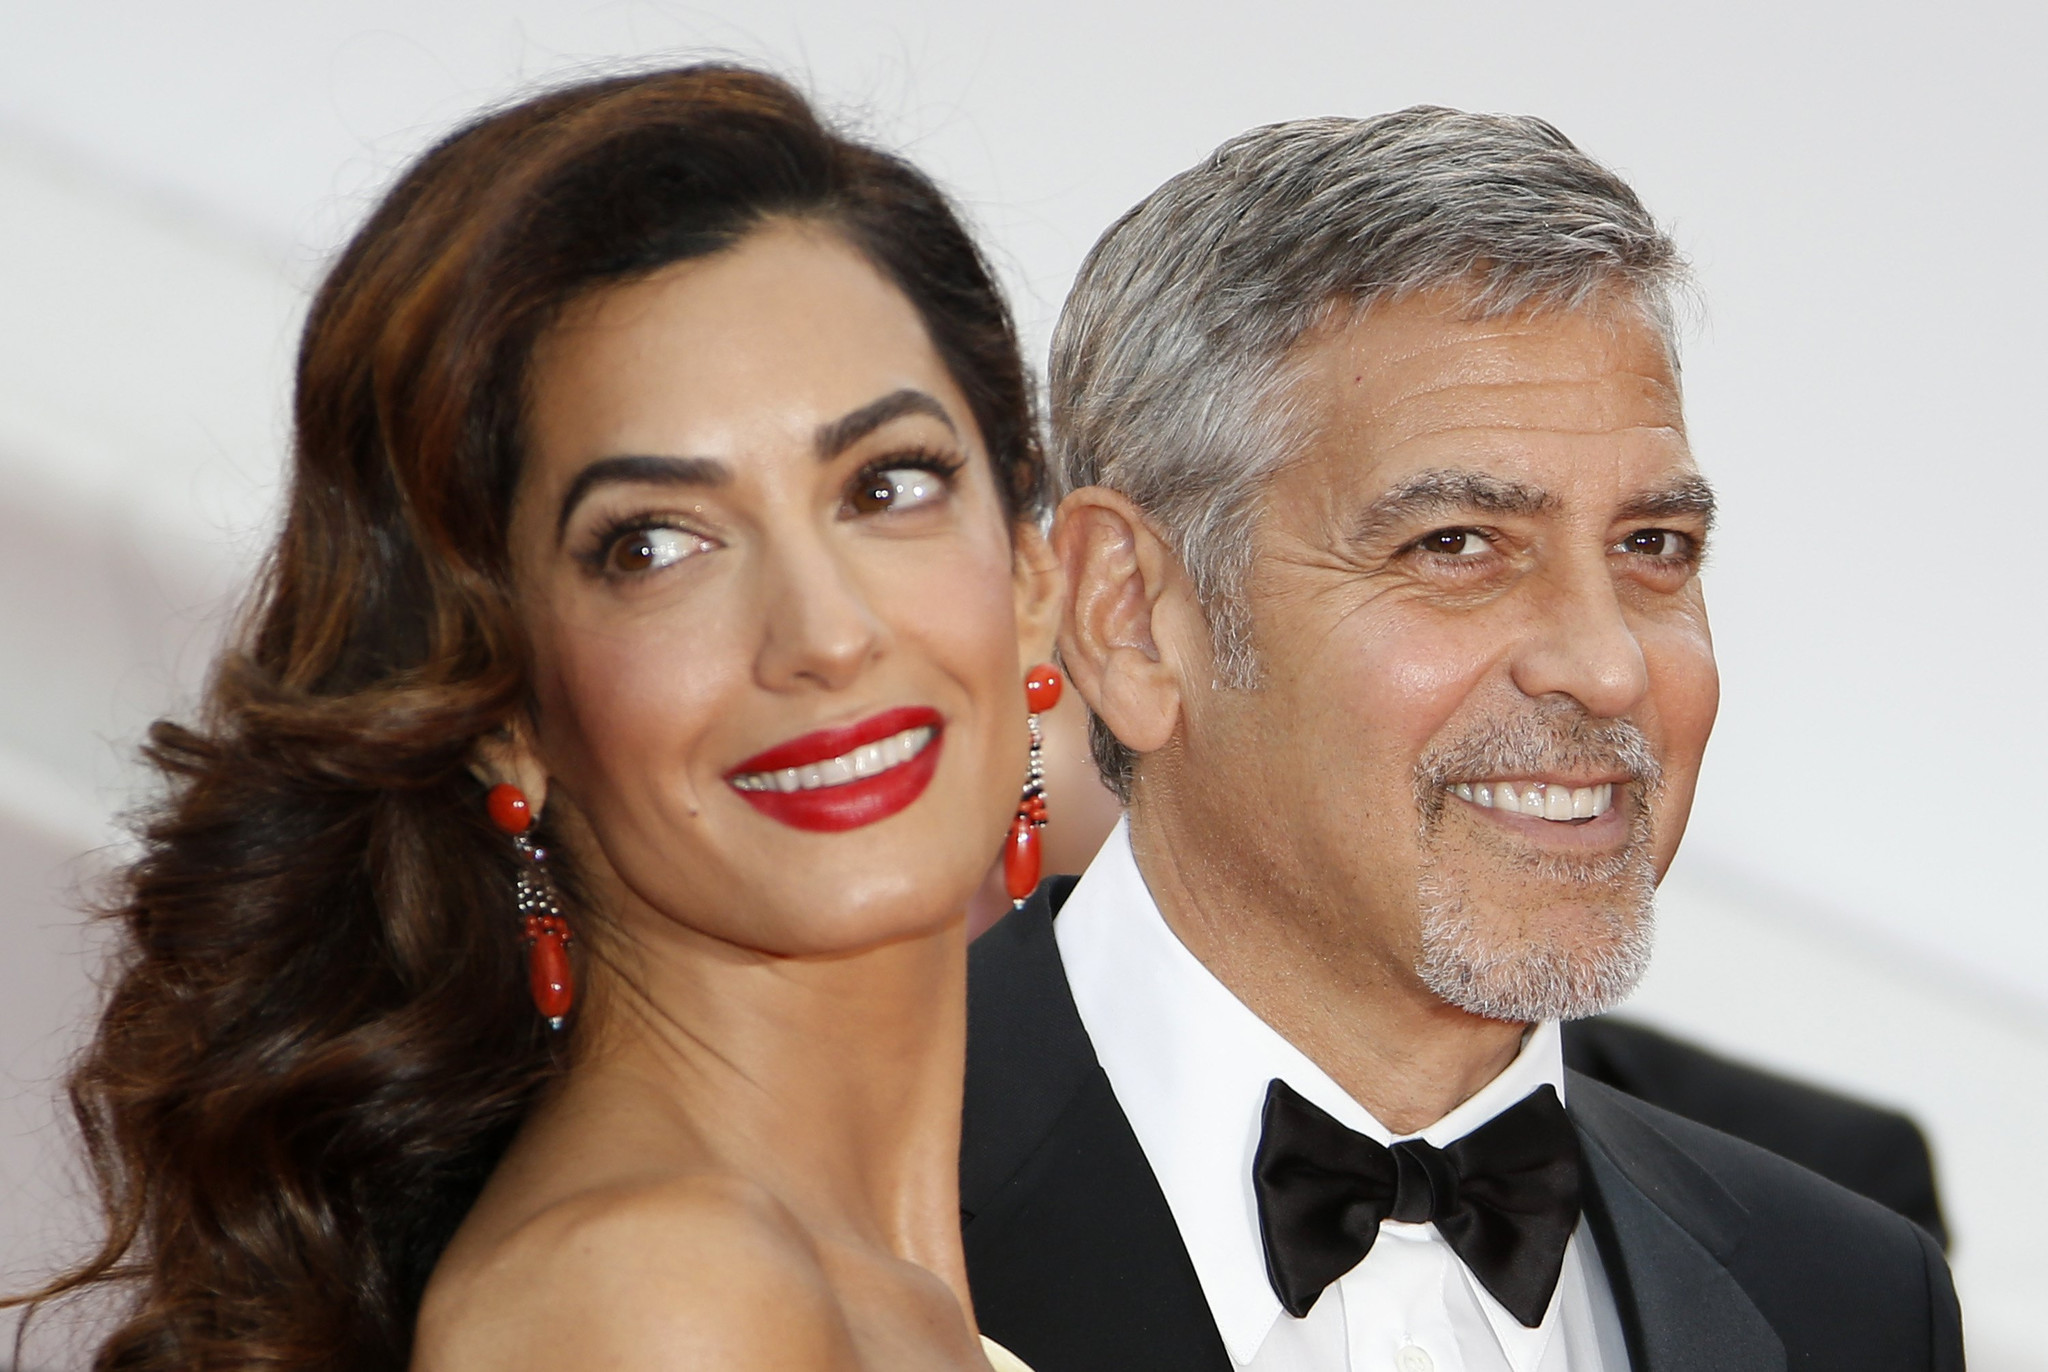 Clooney donates $1 million to track and stop hate groups